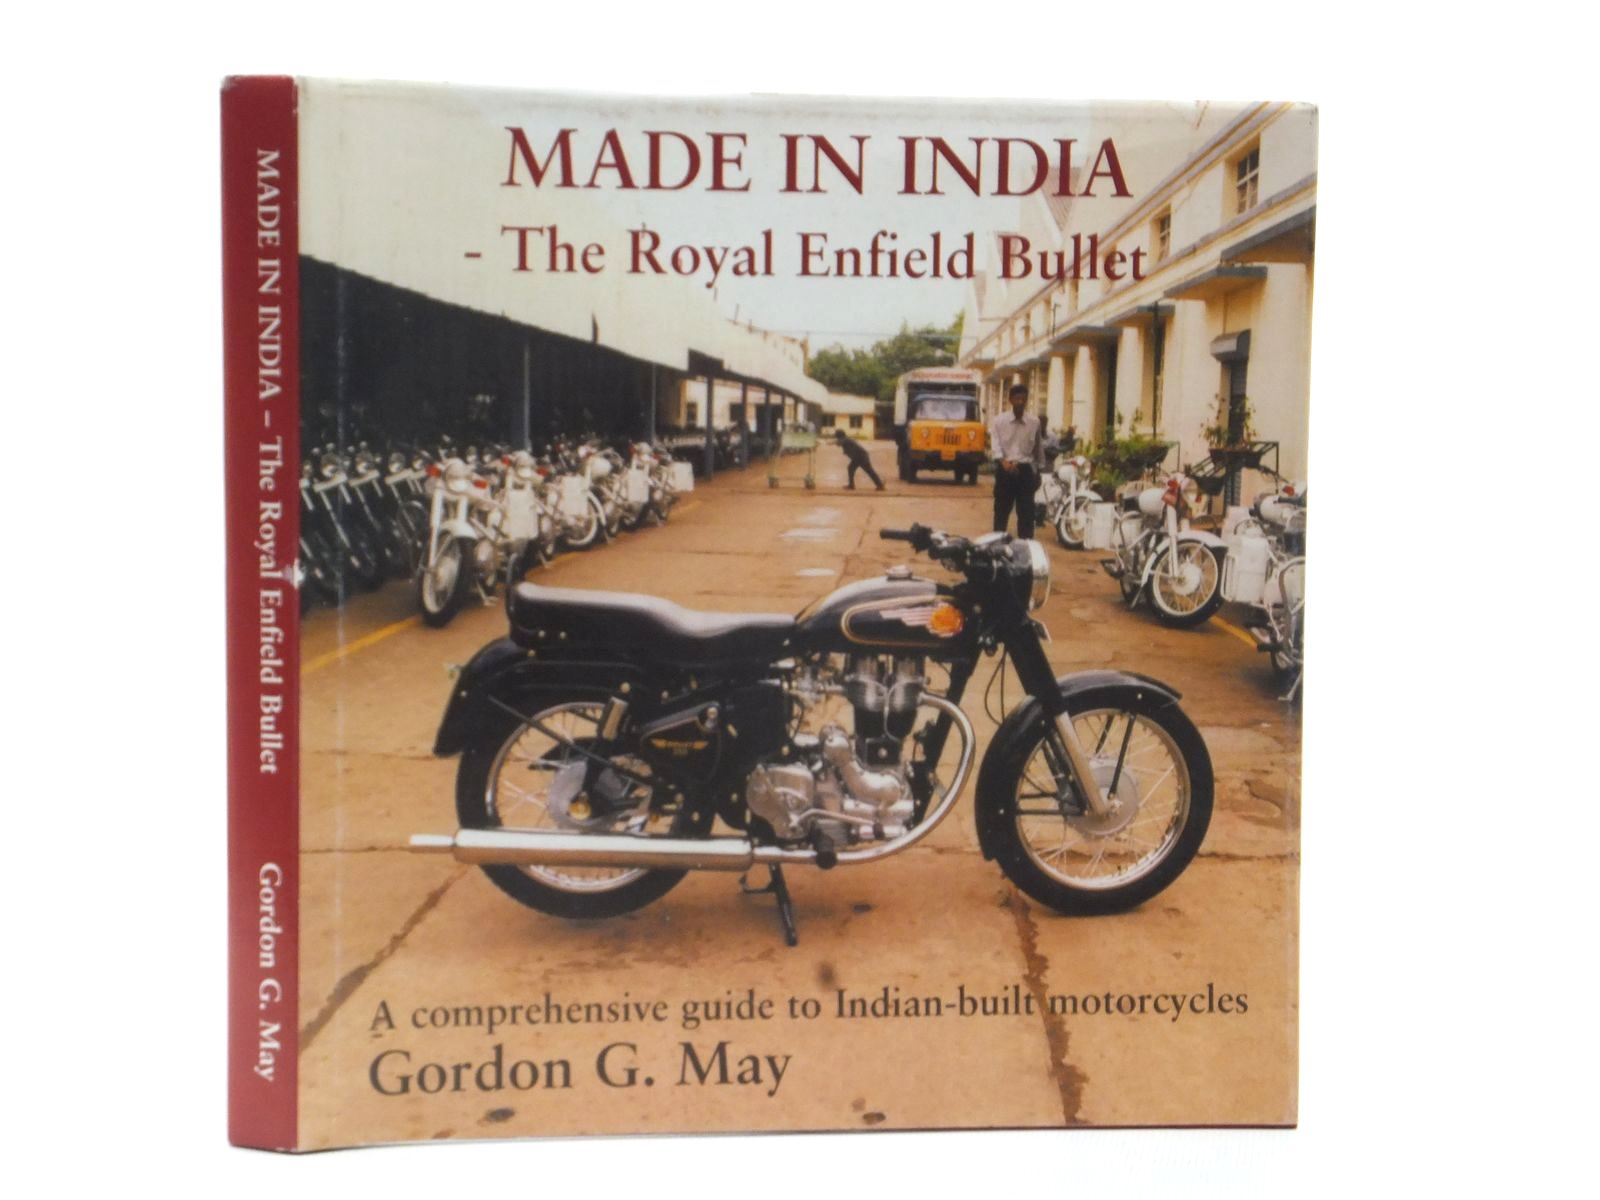 Photo of MADE IN INDIA THE ROYAL ENFIELD BULLET written by May, Gordon G. published by Rg Publishing (STOCK CODE: 2124128)  for sale by Stella & Rose's Books